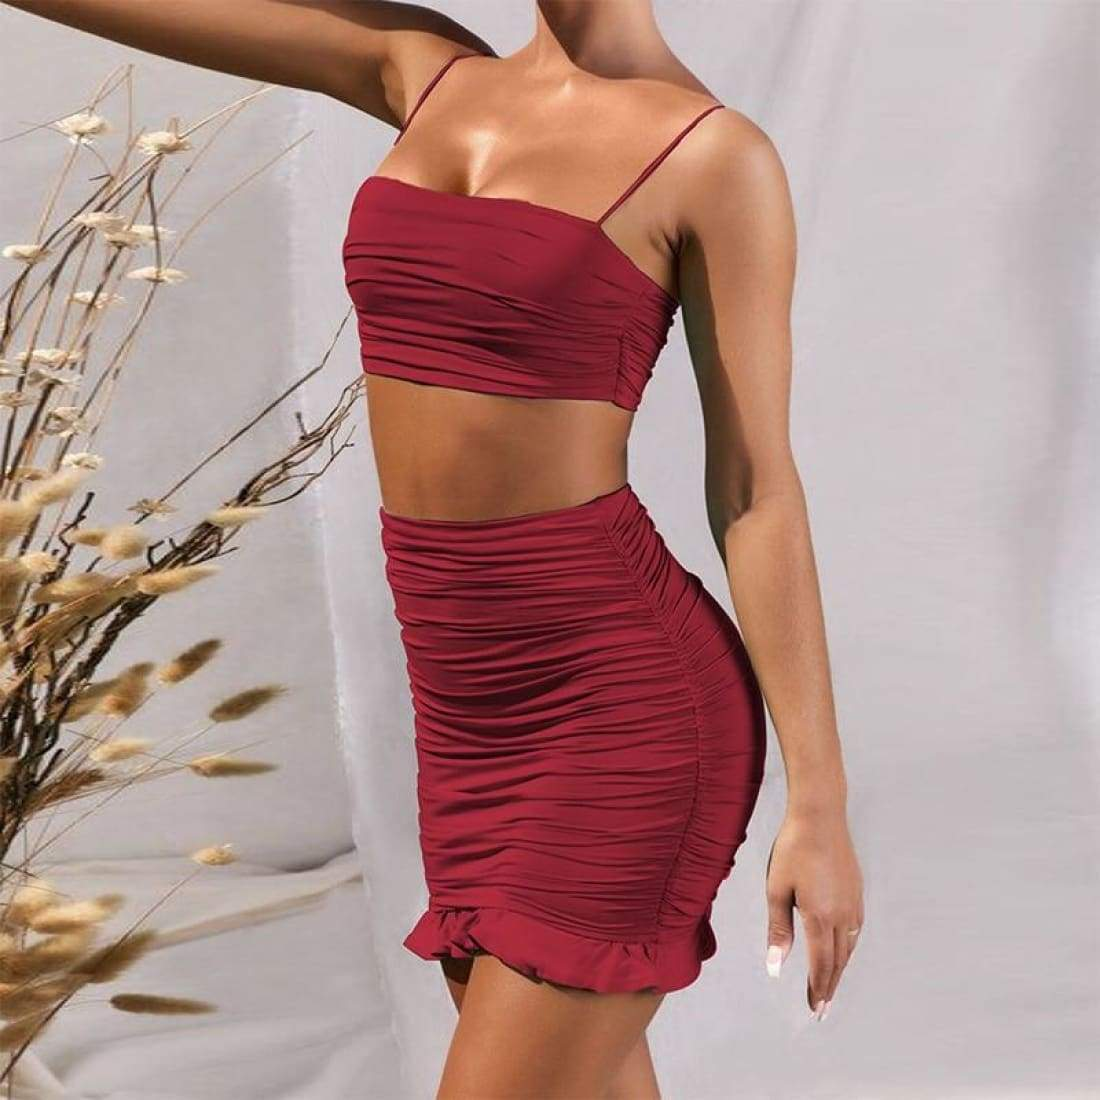 Ruffle summer set (2 Pieces) - Ruffle Wine Red / S - Bodycon off shoulder crop top strap sexy skirt two piece party